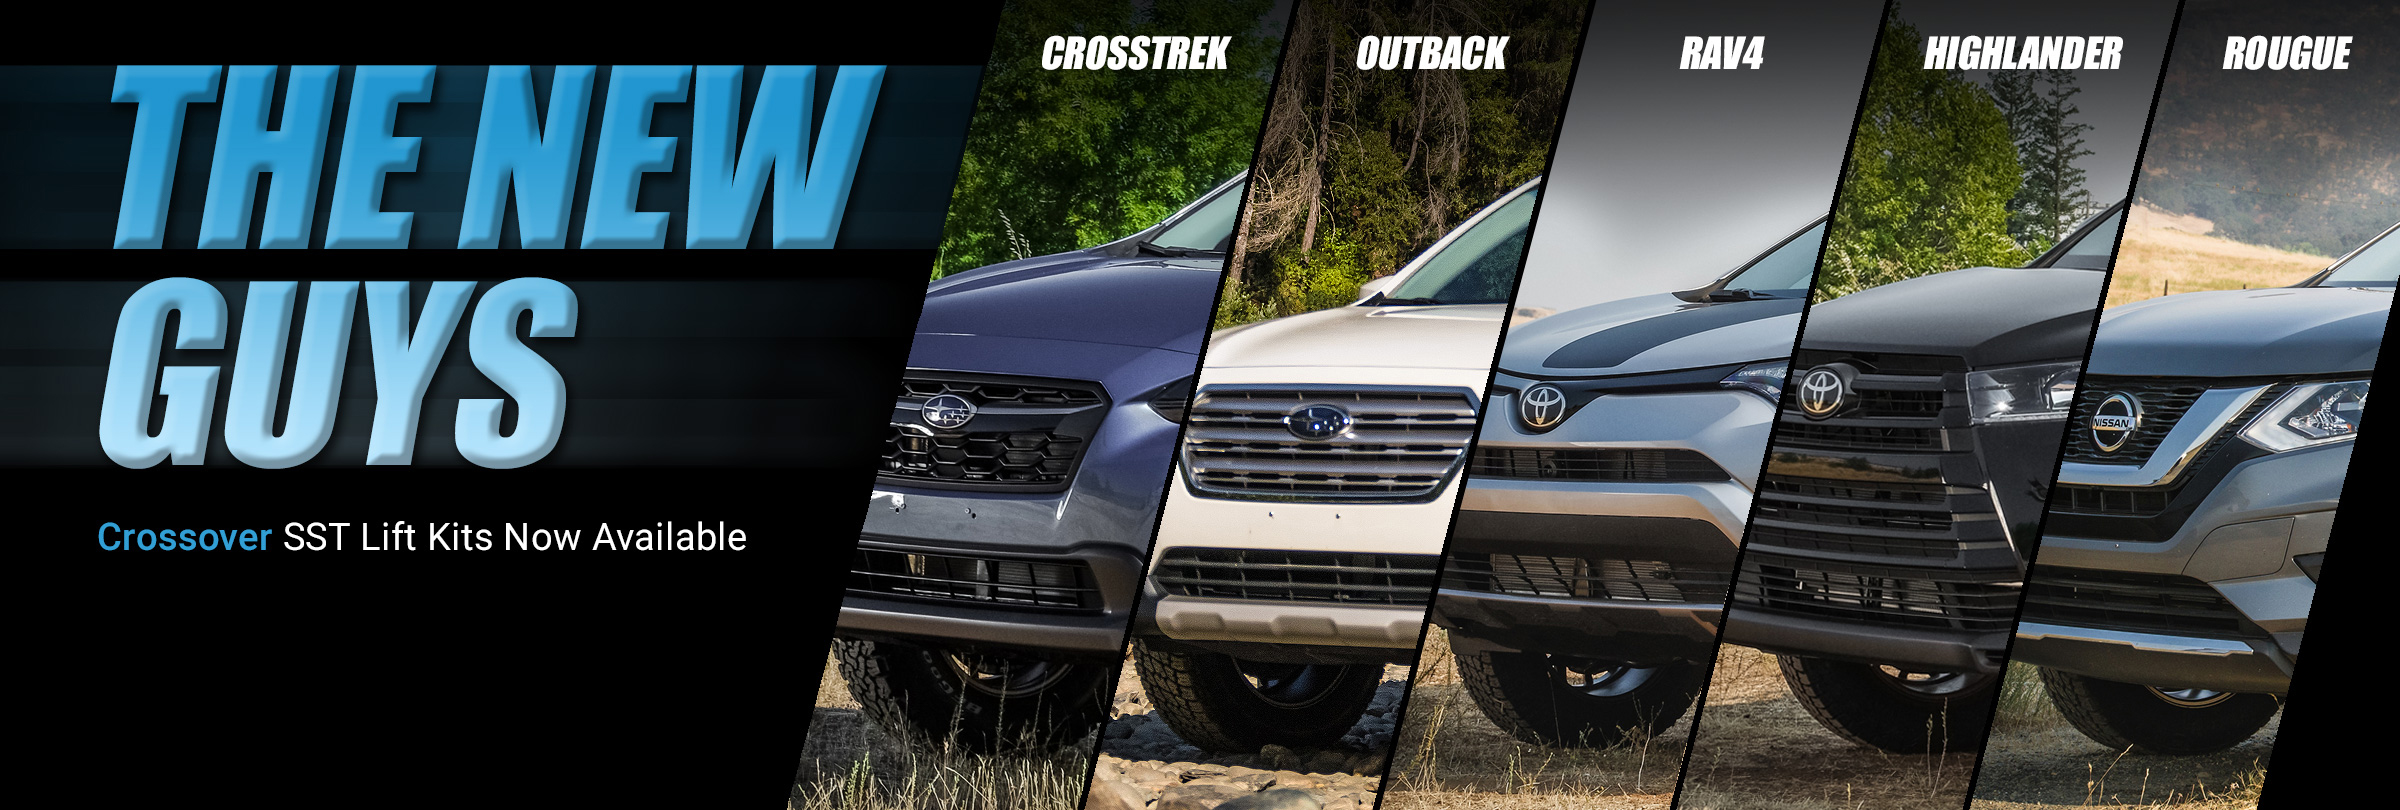 Readylift Crossover Lift Kits Toyota Land Cruiser Kit Are Here And Ready To Hit The Trail